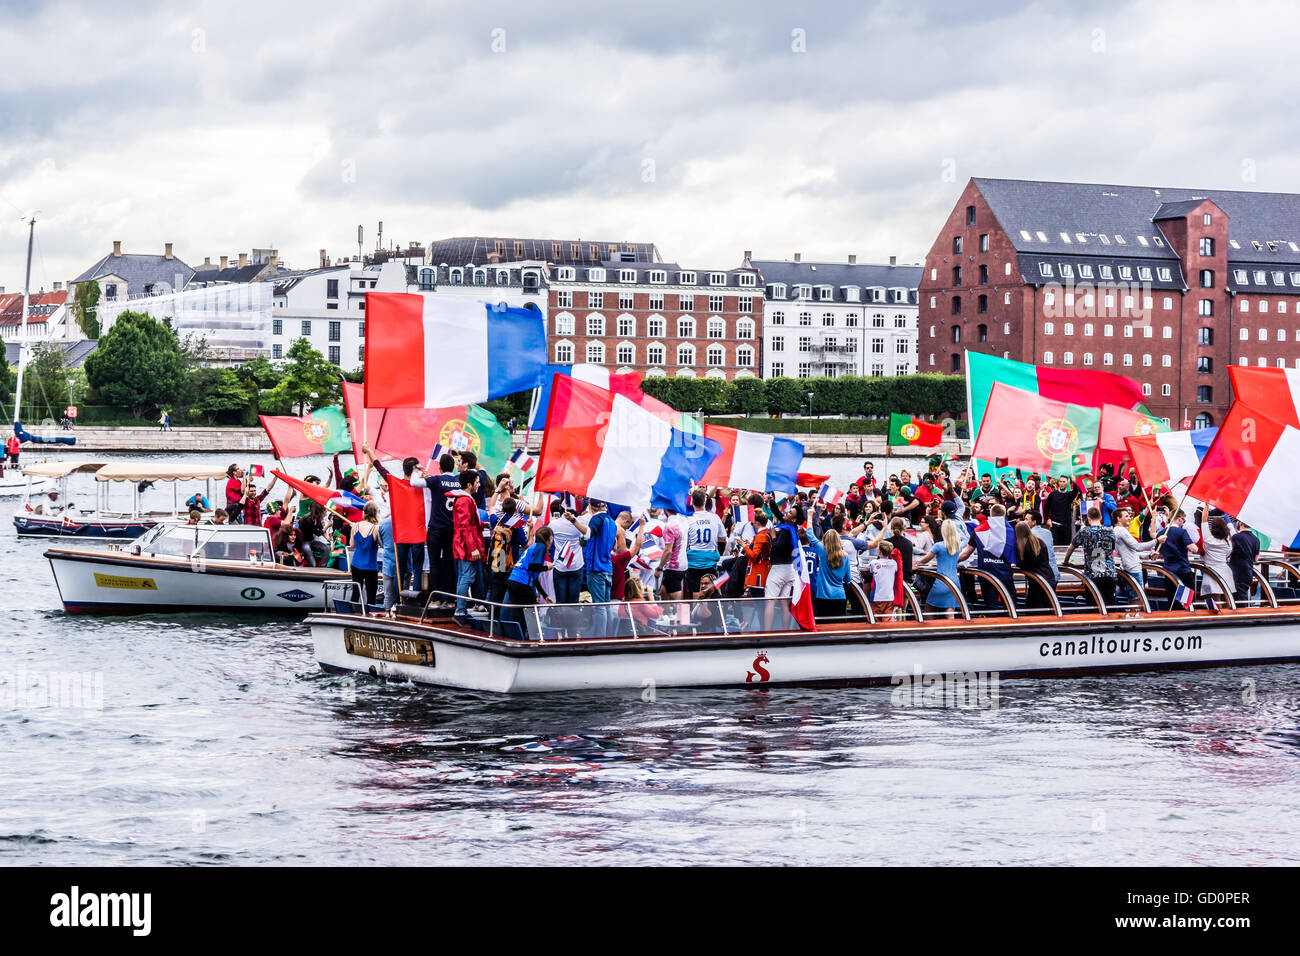 Copenhagen, Denmark. 10th July, 2016. Supporters from France and Portugal saling on canal boats in Copengaen, cheering - Stock Image